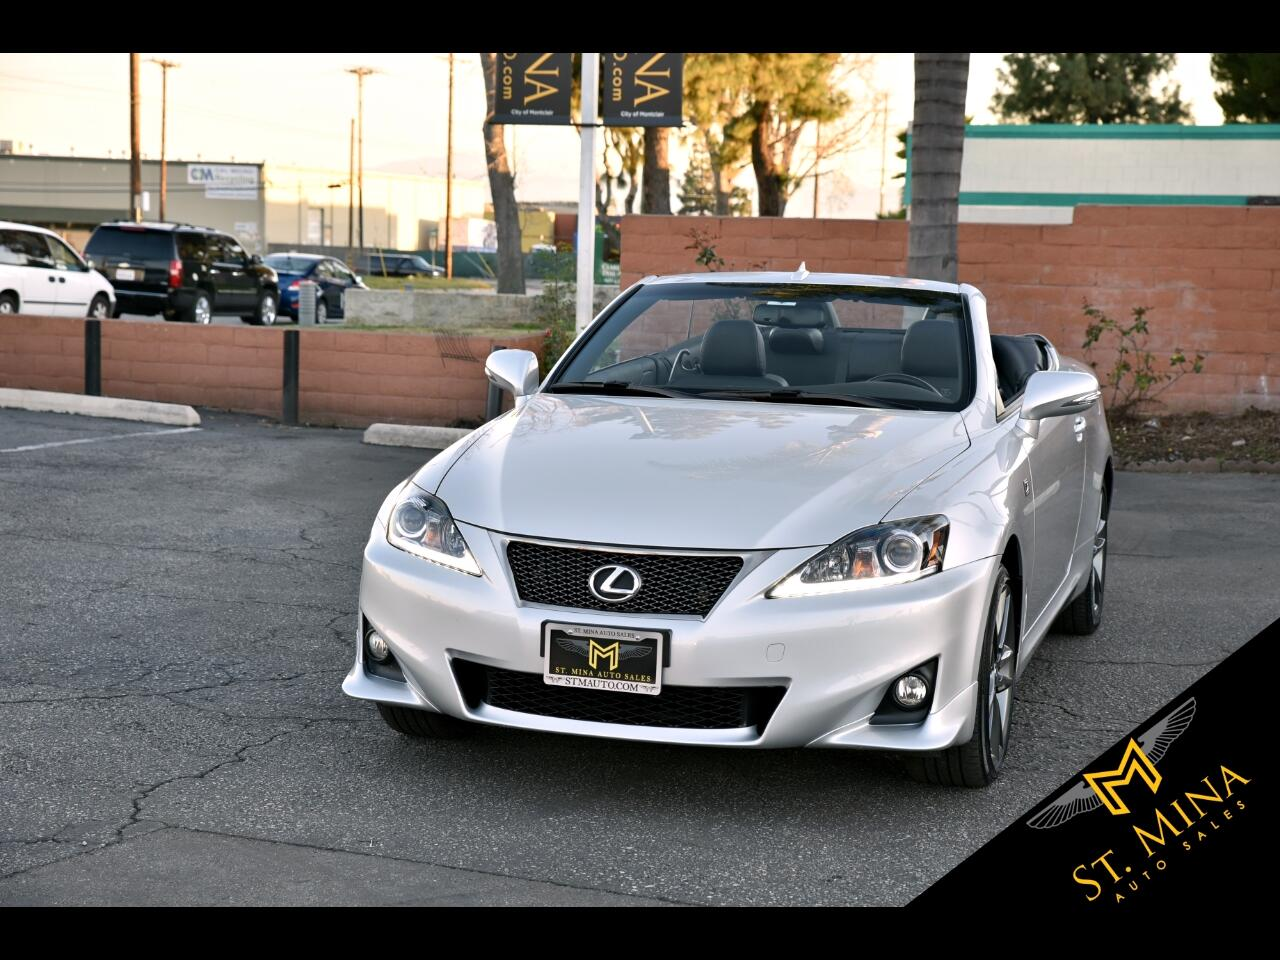 2013 Lexus IS C 350 F-Sport